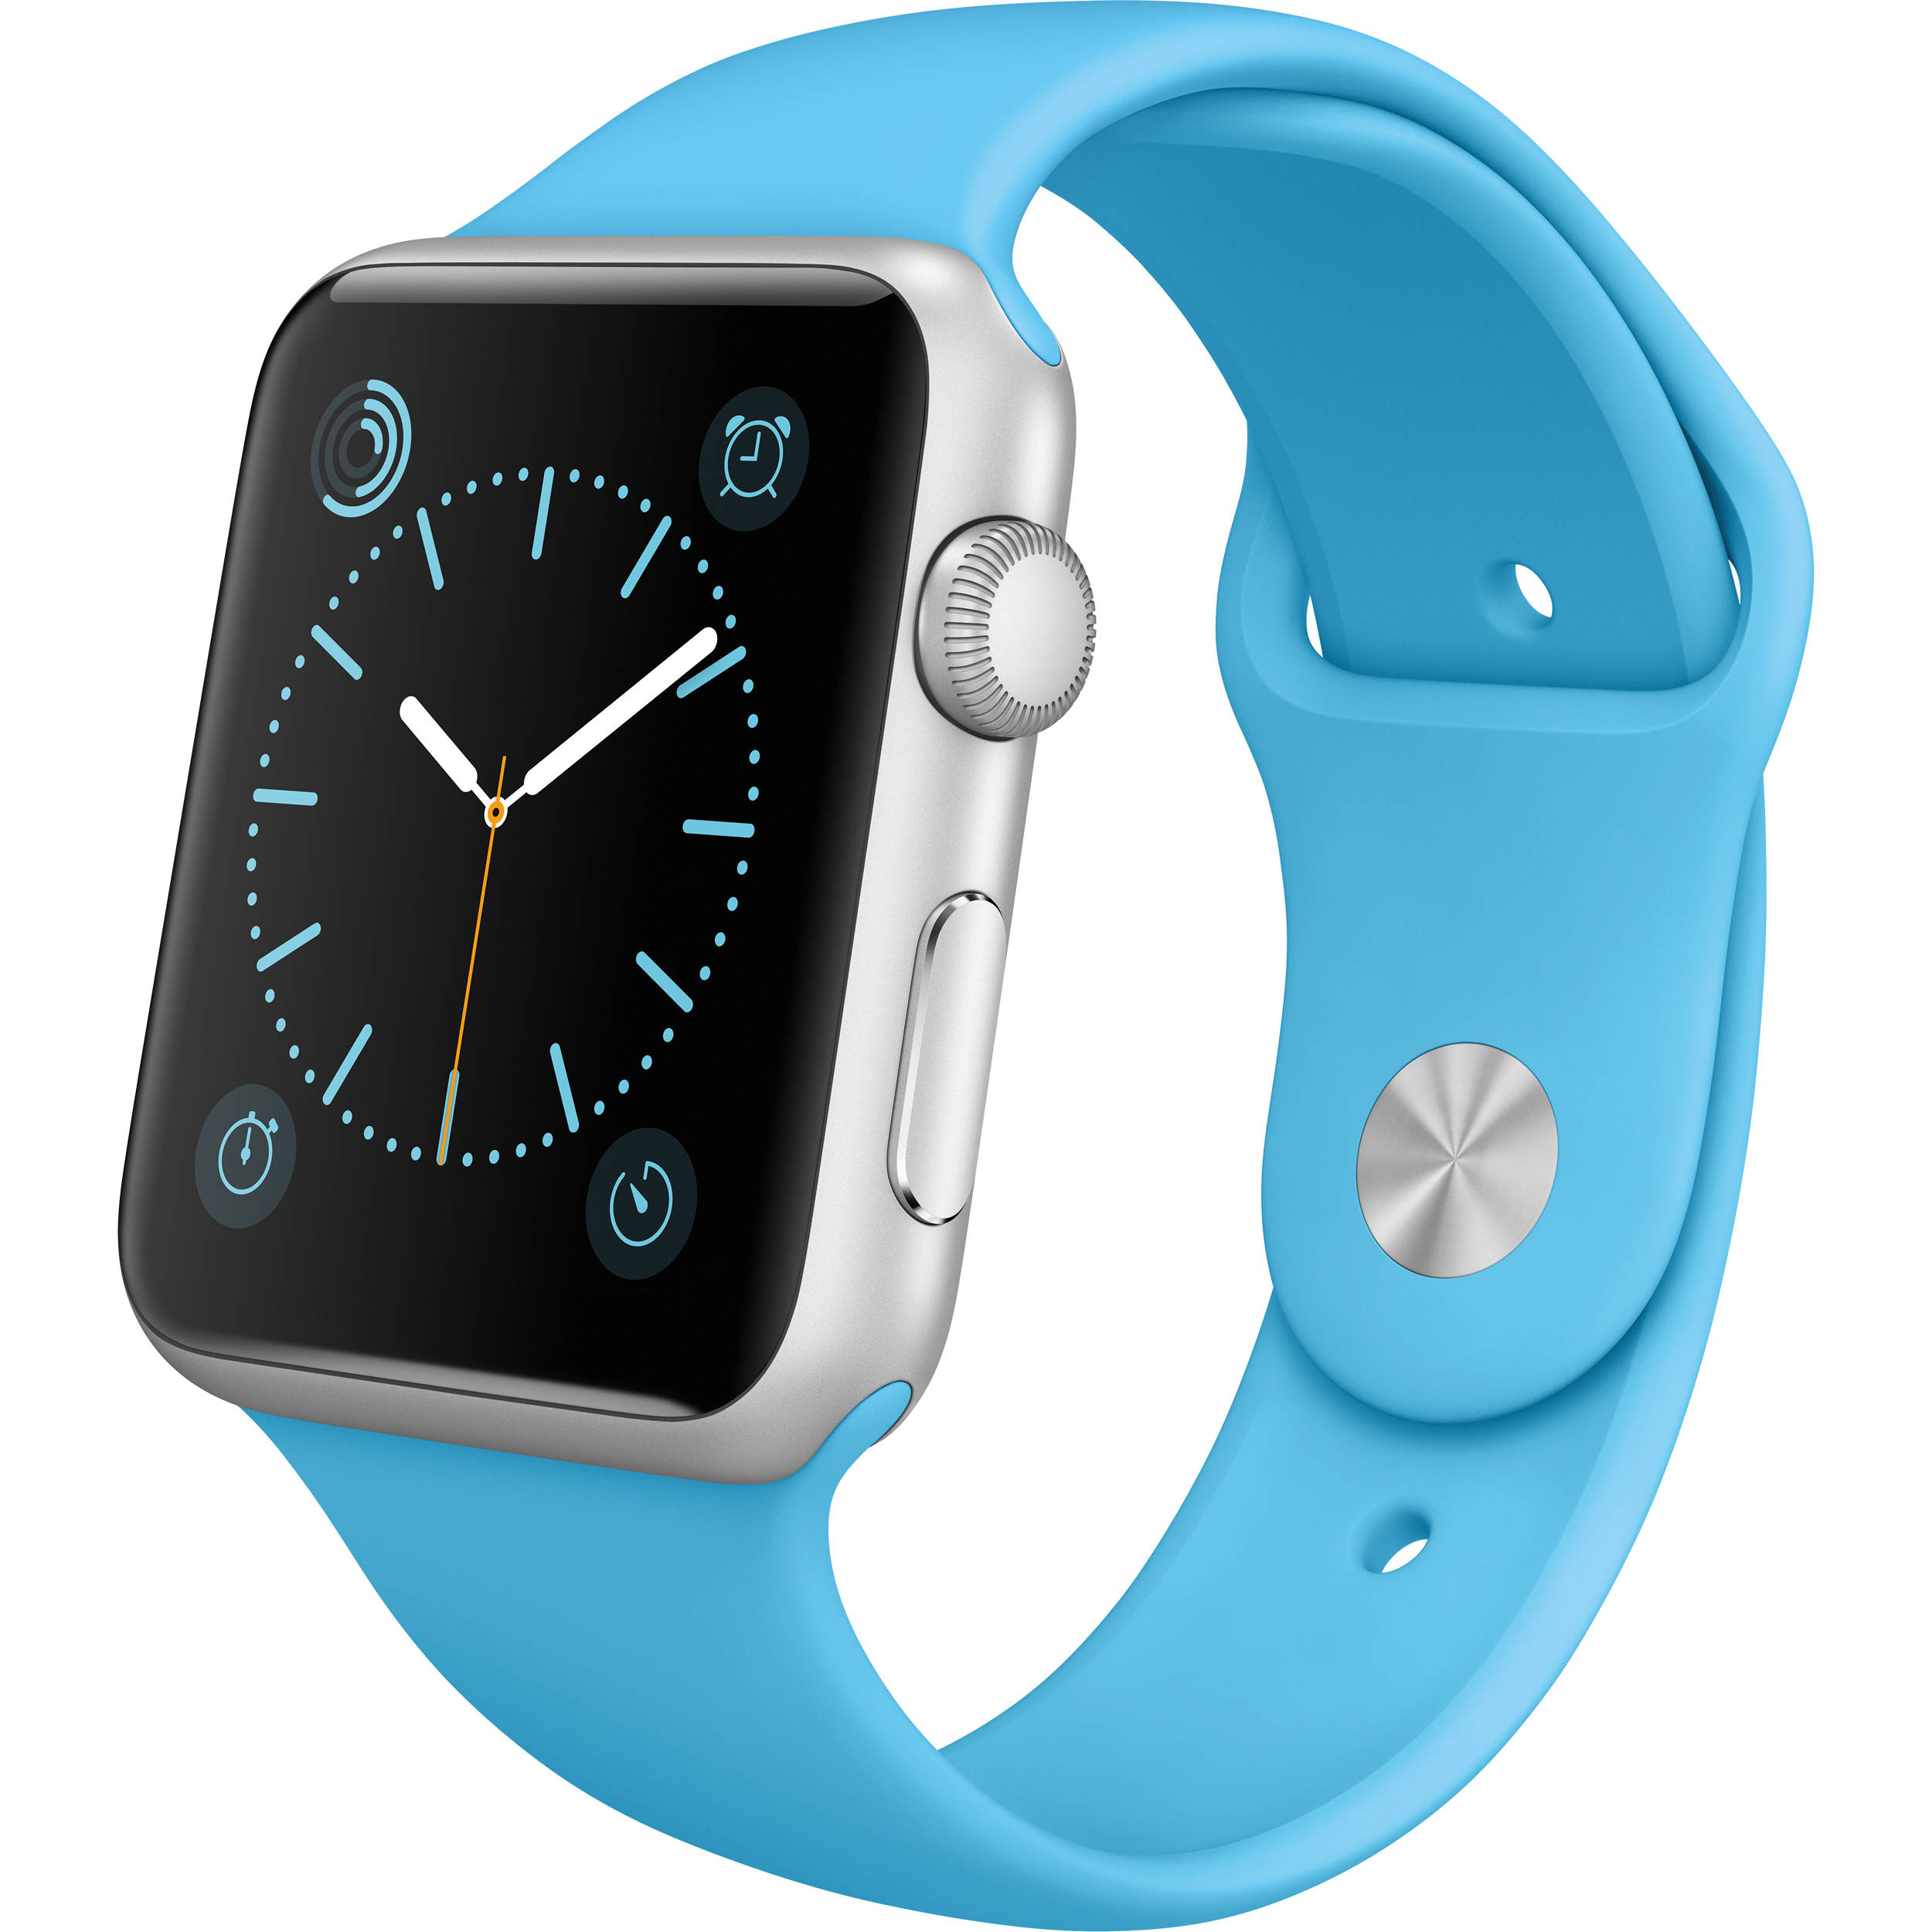 Apple Watch Sport 42mm Smartwatch Mlc52ll A Bh Photo Video Click Image For Larger Versionnamediagramjpgviews1317size156 Kbid 2015 Silver Aluminum Case Blue Band